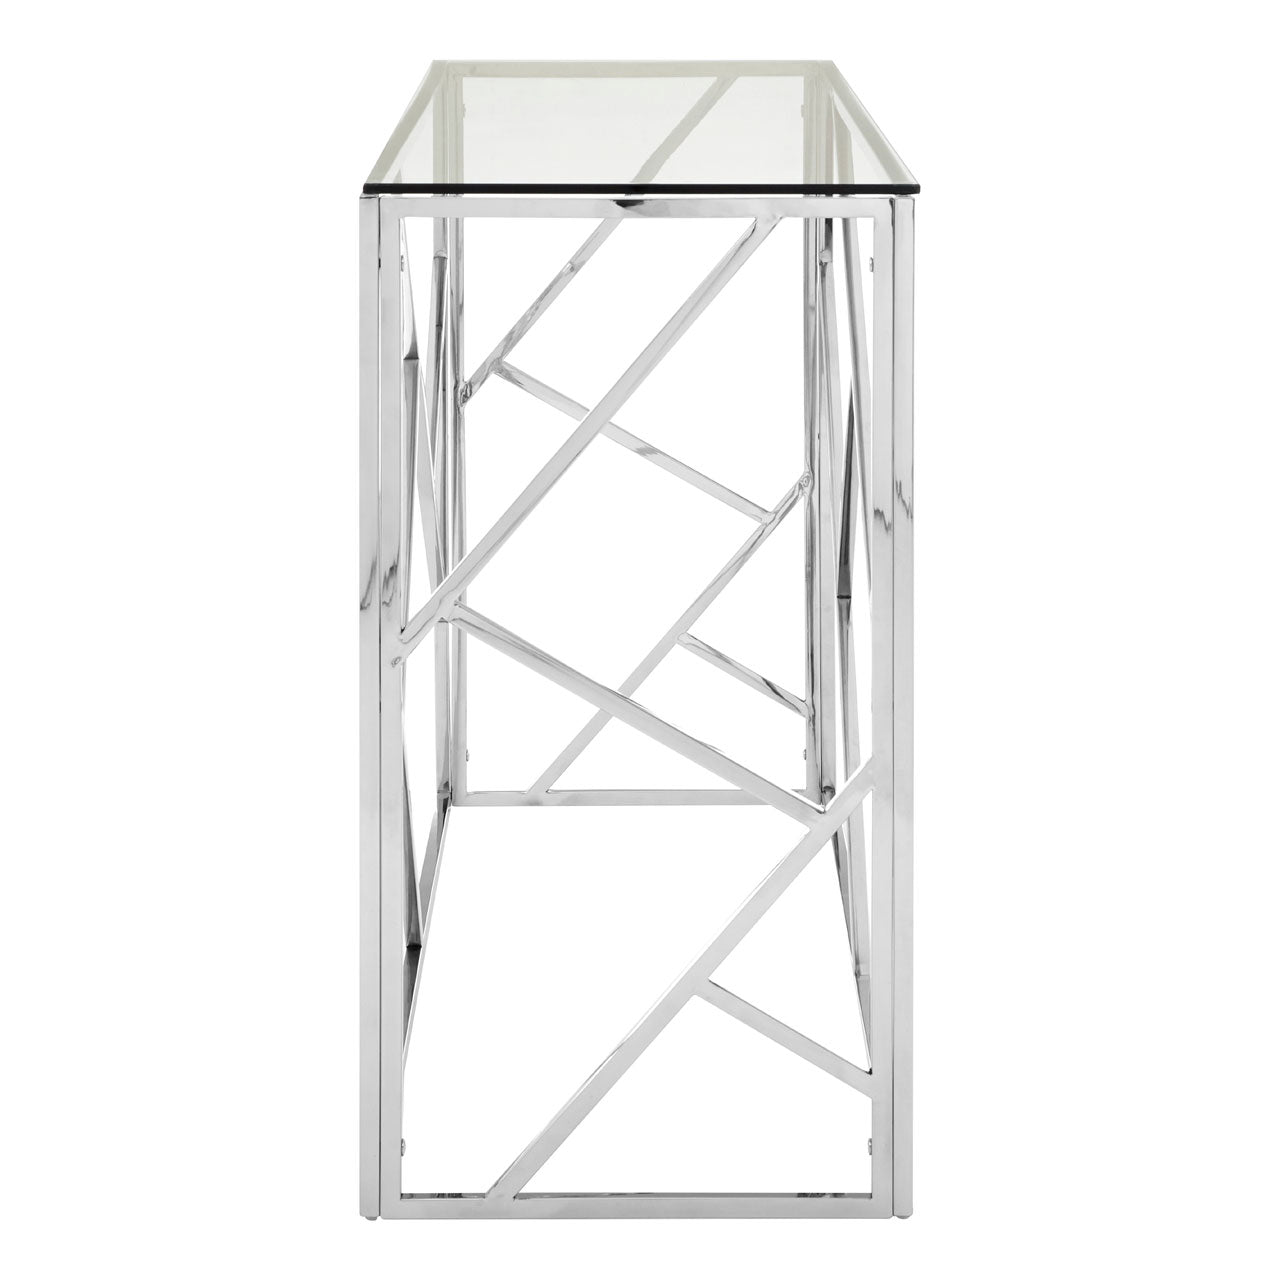 Allure Console Table Stainless Steel - Ezzo